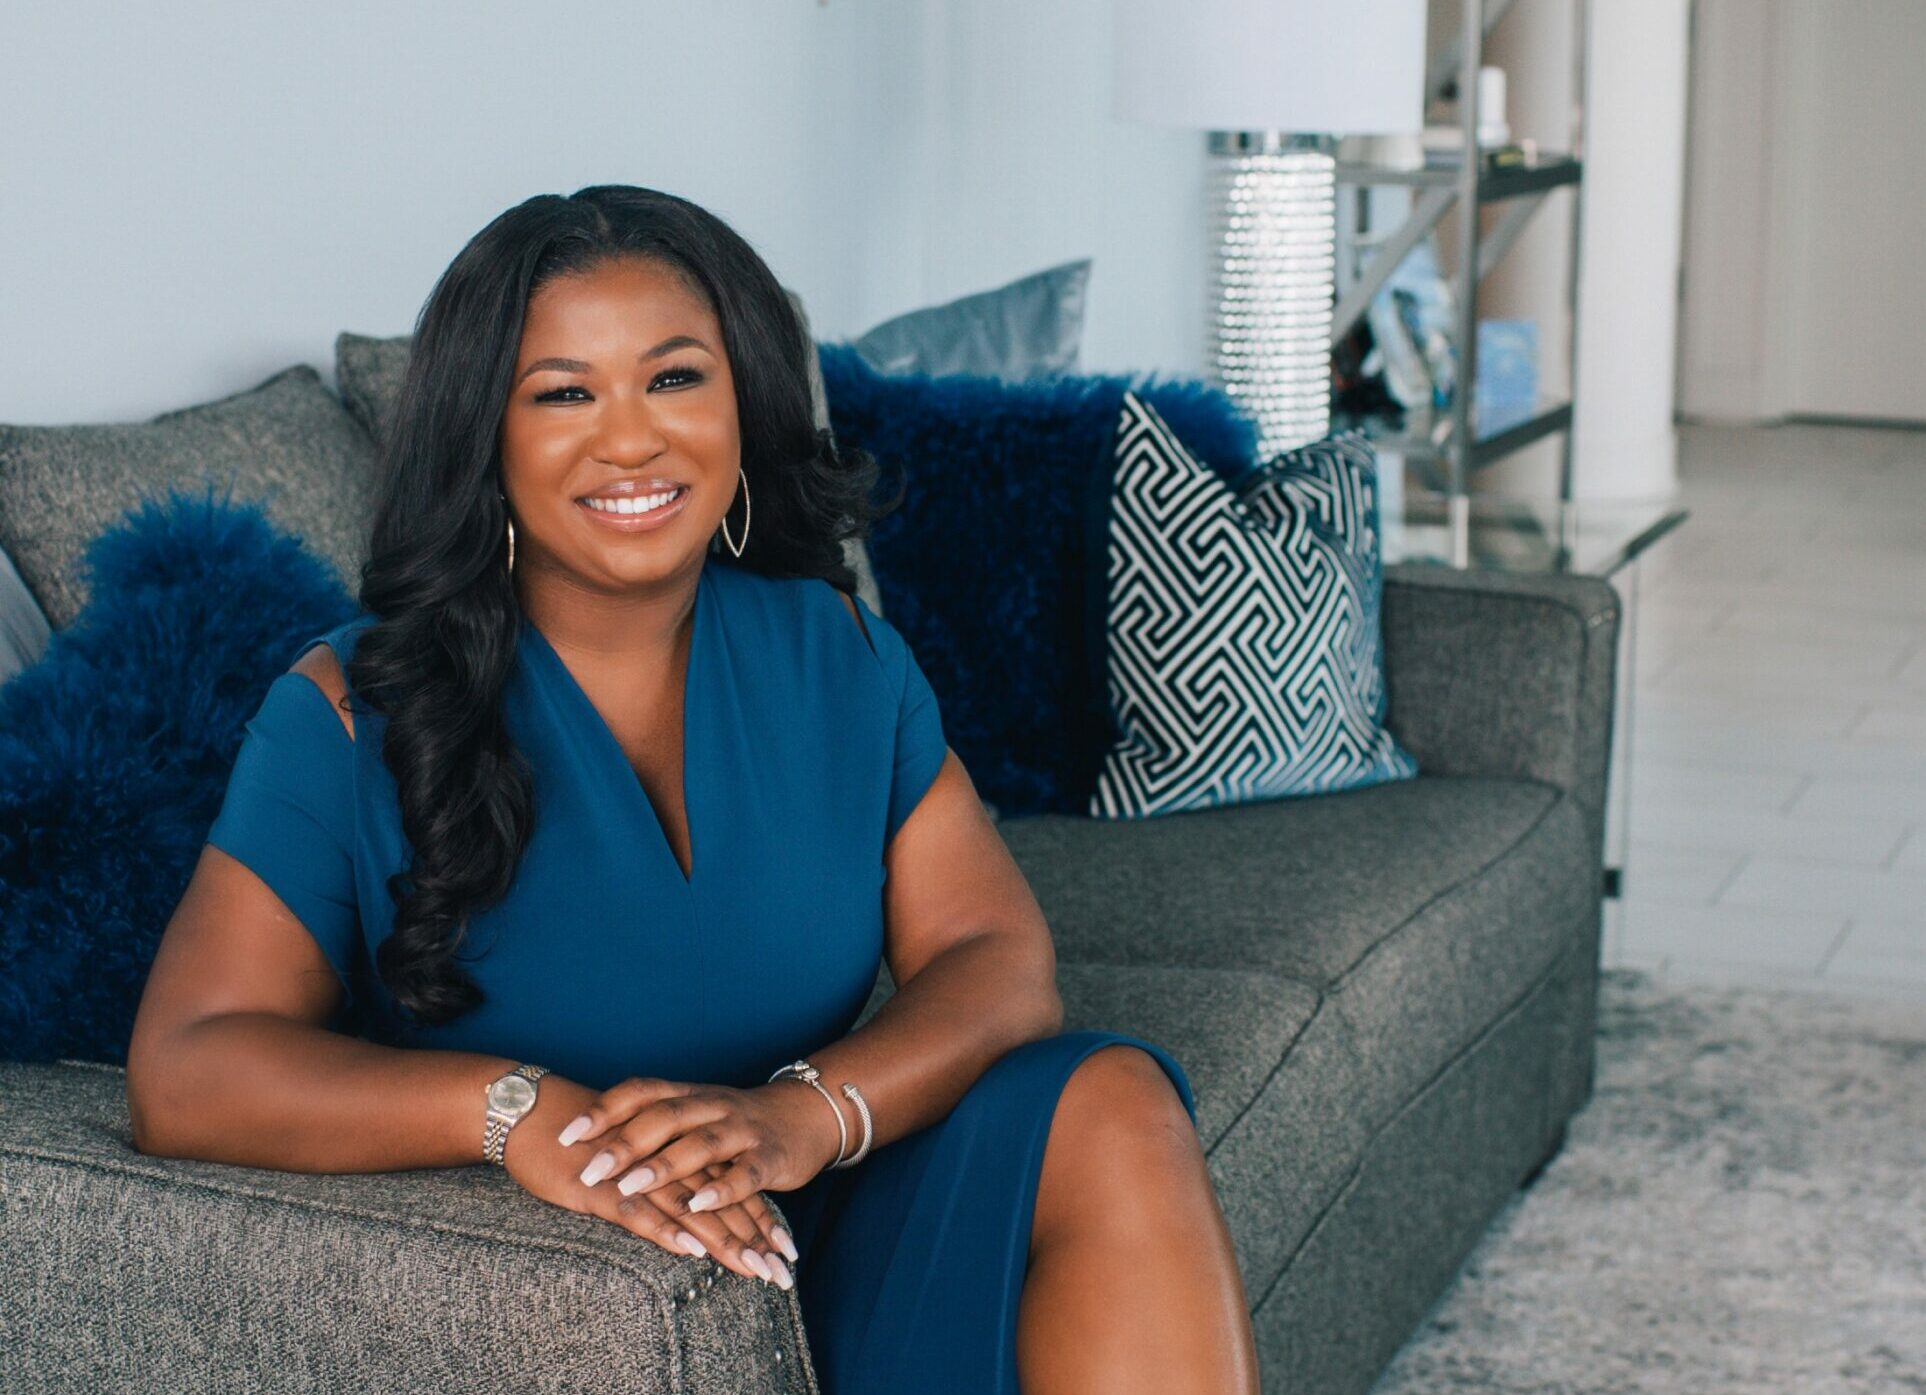 Meet the Woman Who Built a 7-Figure Black-owned Public Relations Firm In Less Than 4 Years